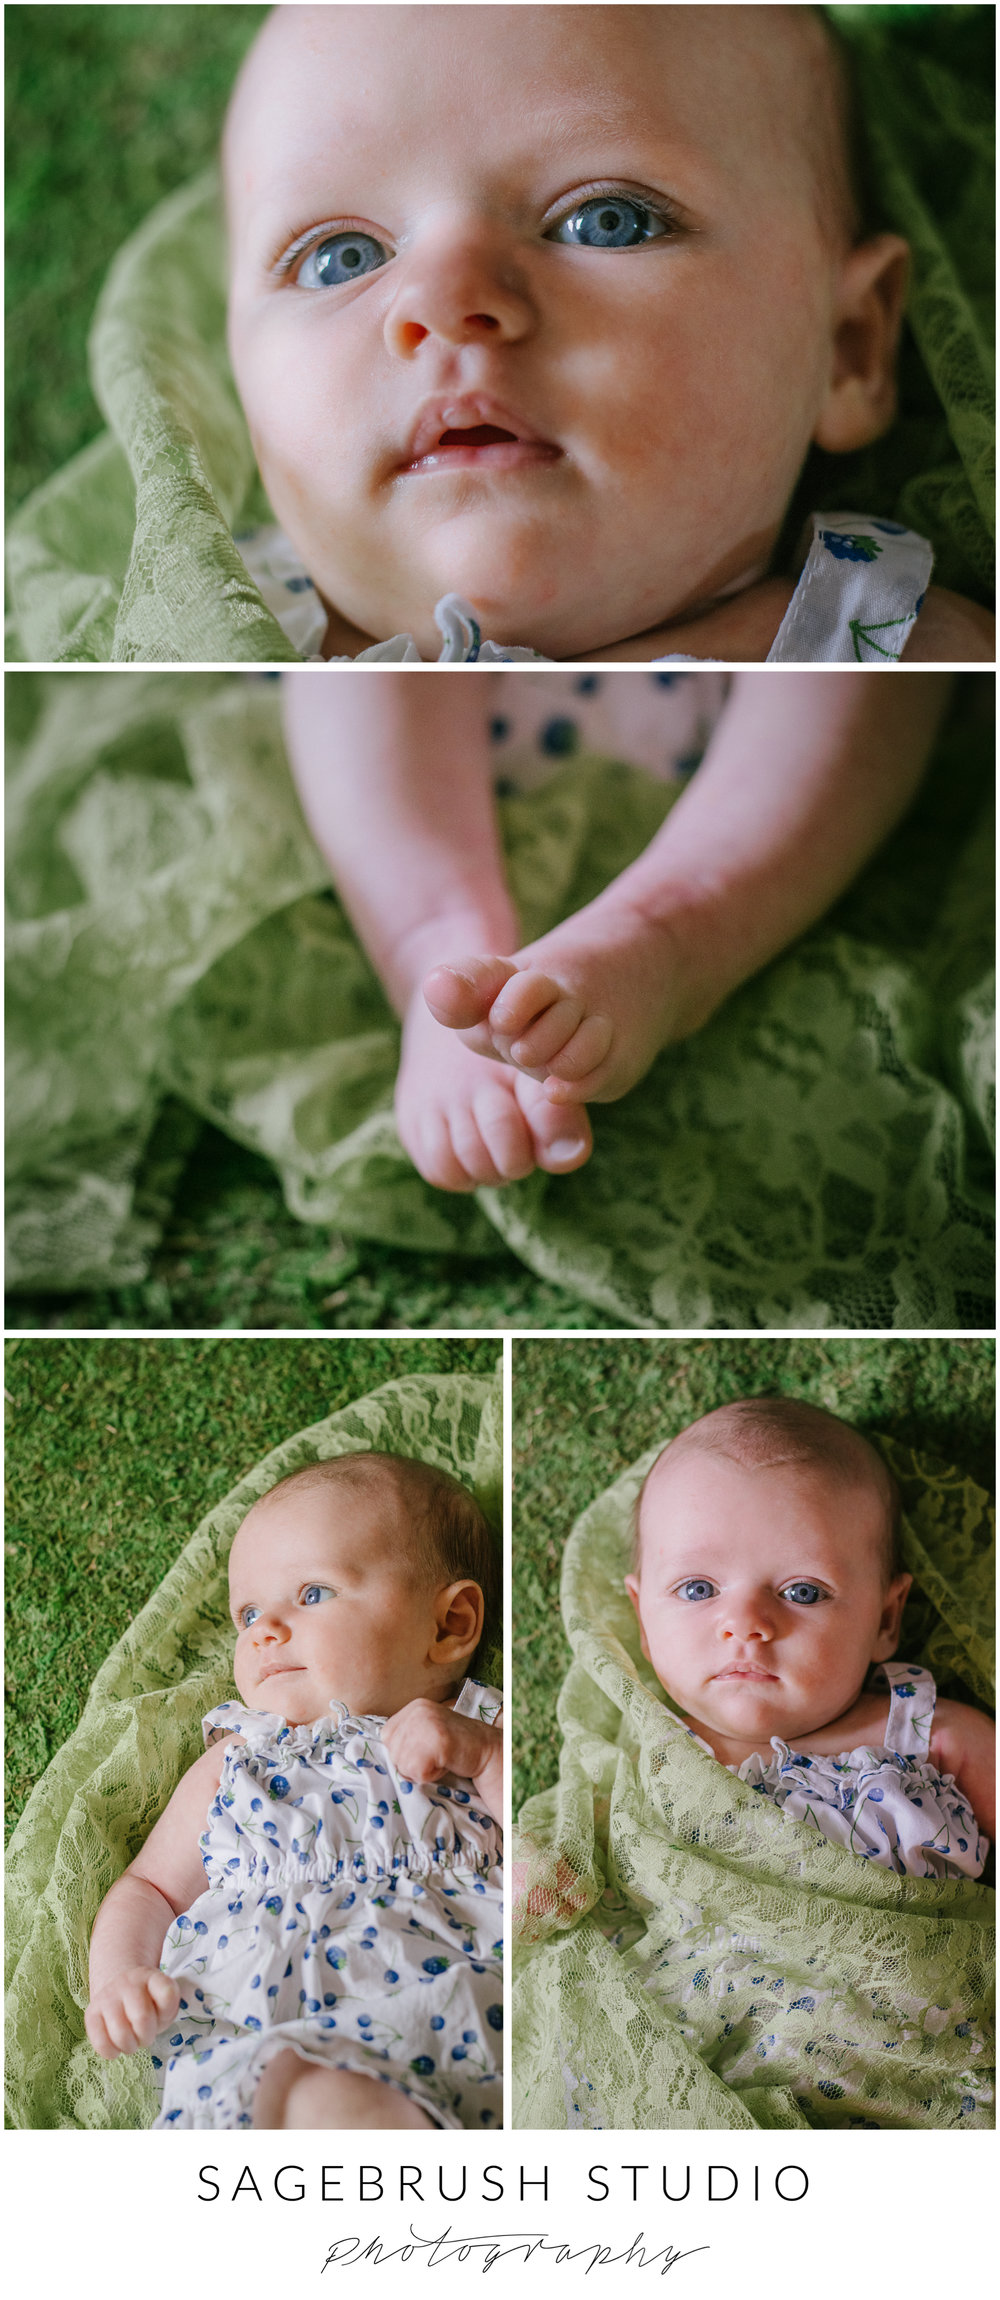 Baby Photography, Baby Blue Eyes. Sagebrush Studio Photography. Shelby, Montana